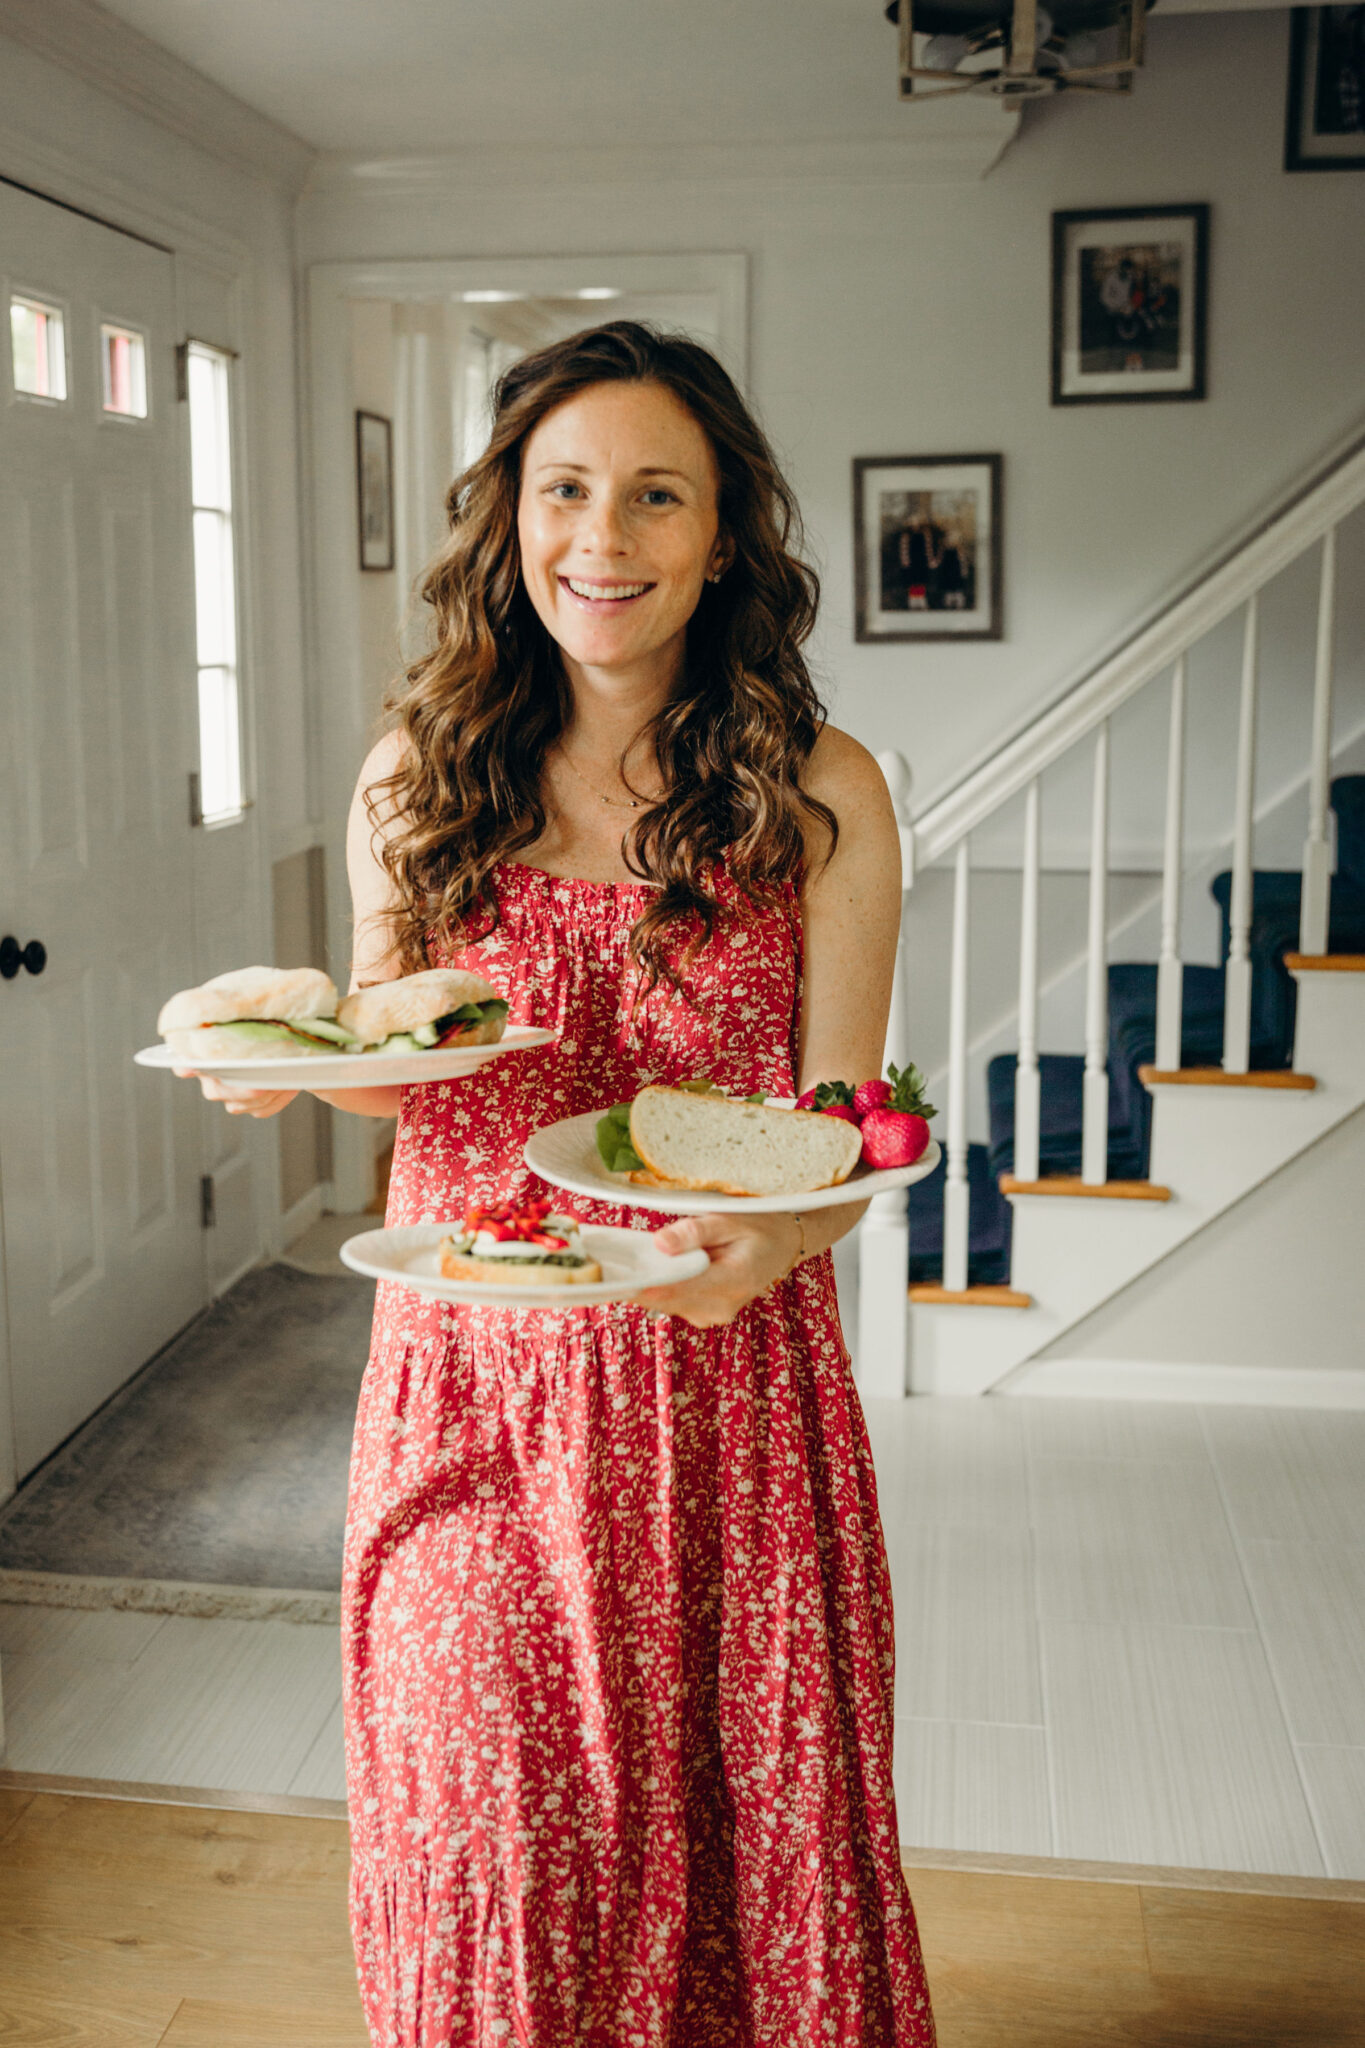 Sandwiches to Eat While Pregnant